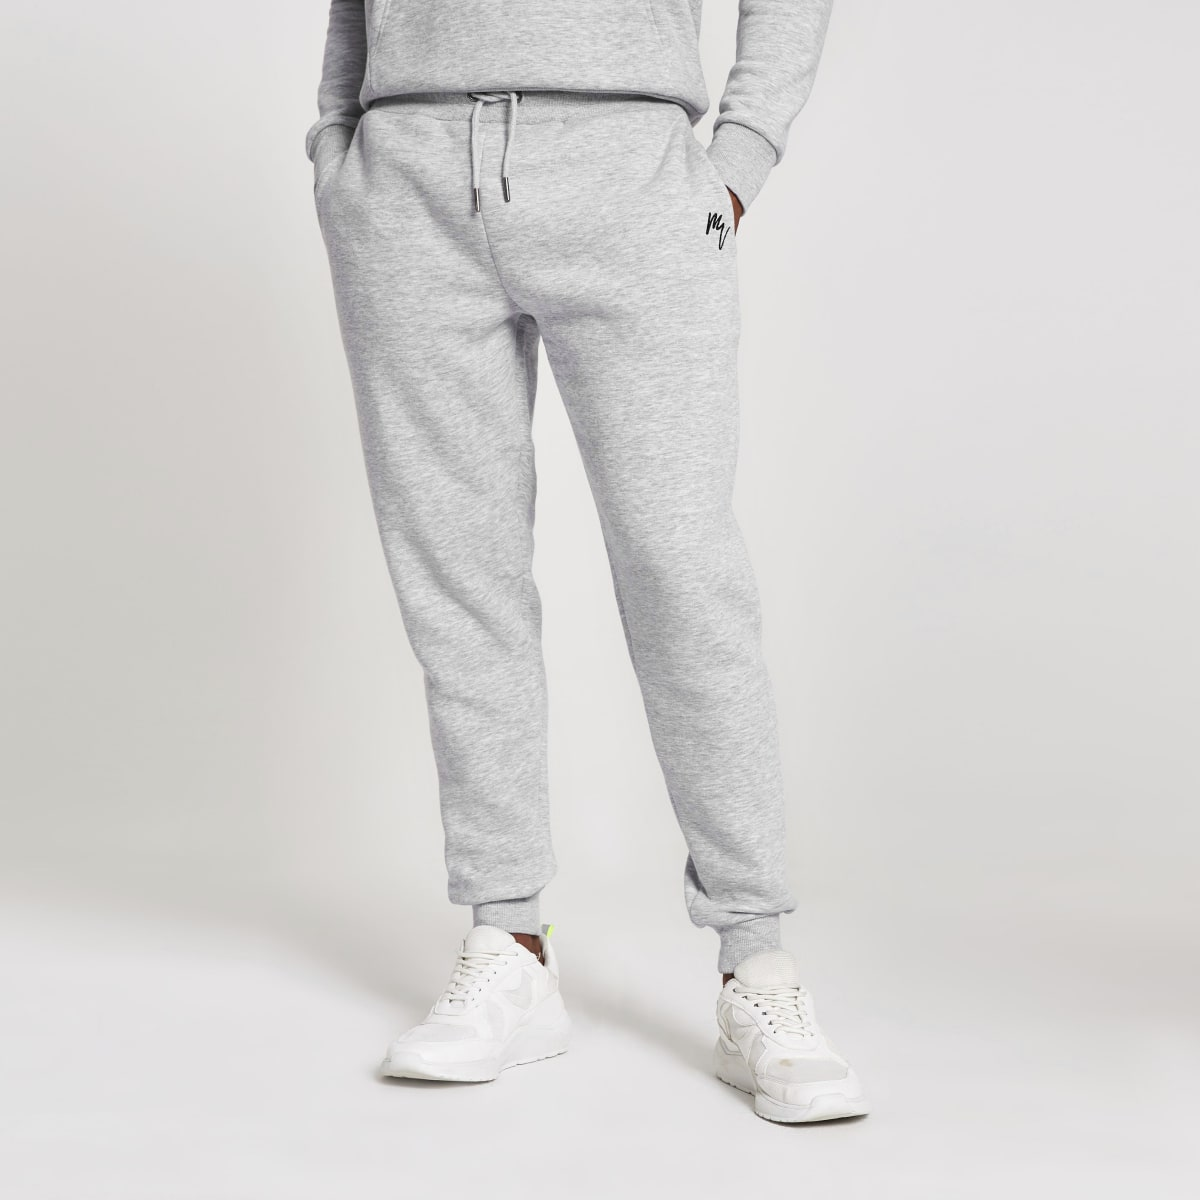 Maison Riviera - Grijze slim-fit joggingbroek